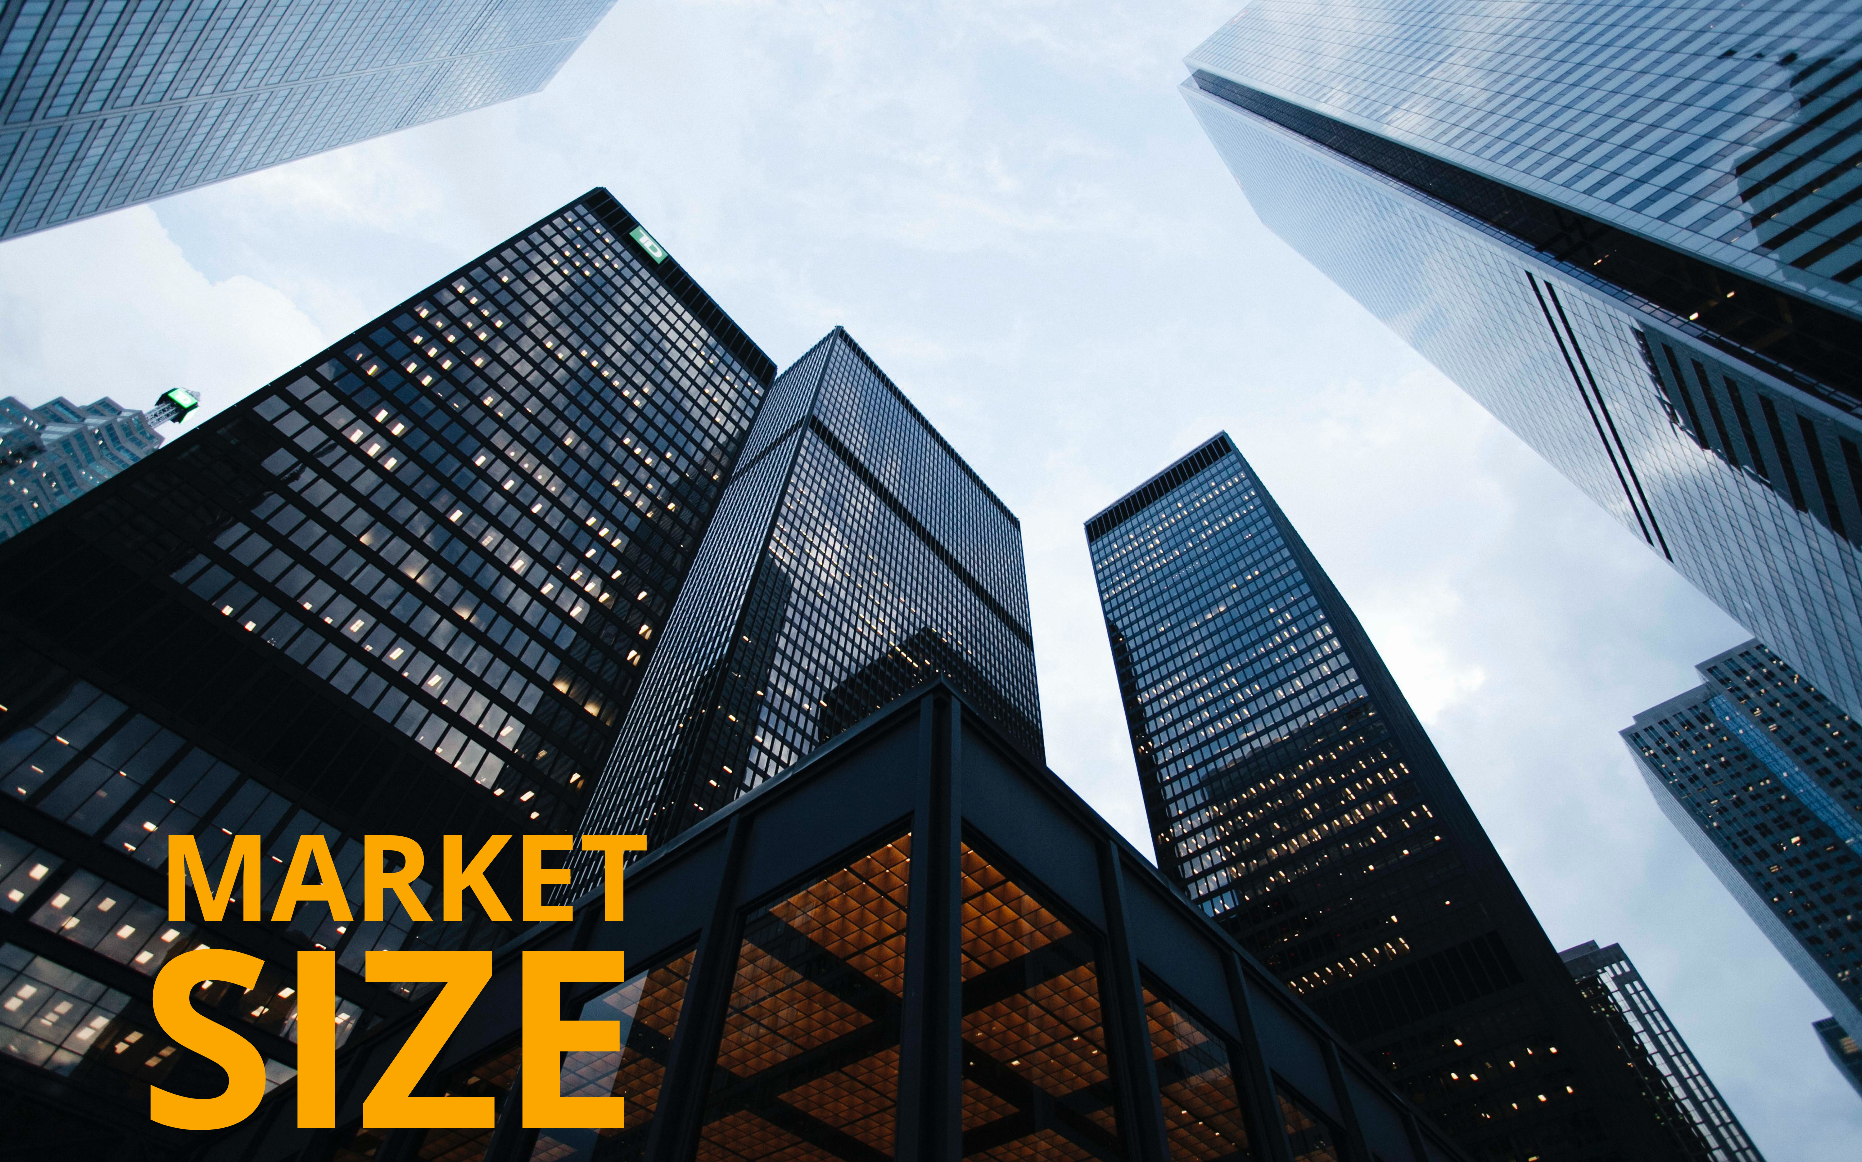 market size, market size questions, market size tv, market size definition, What is market size, market size example